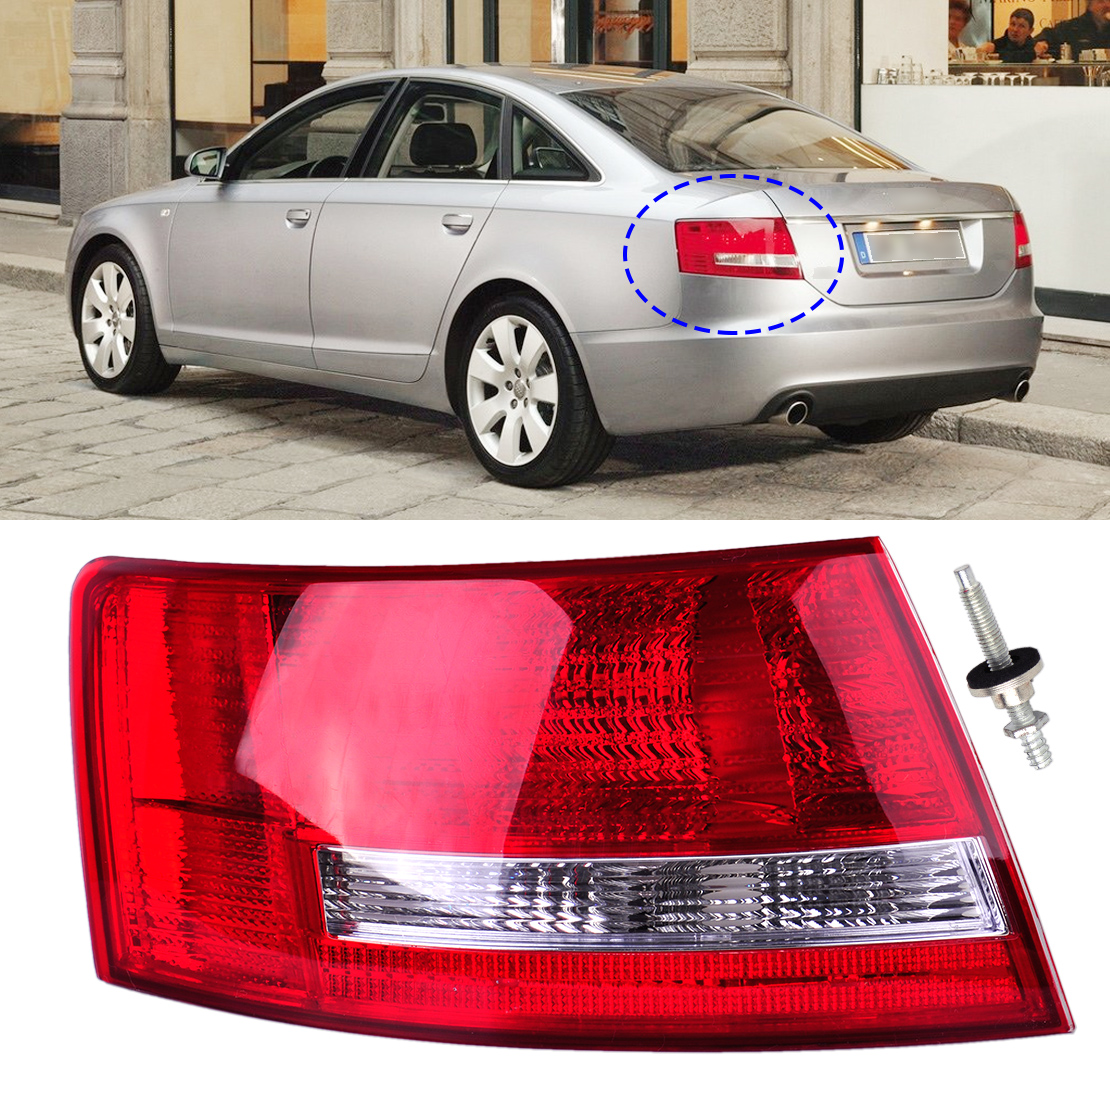 online shop citall left tail light assembly lamp housing without bulb for audi a6 quattro sedan 2005 2006 2007 2008 4f5945095l 4f5945095d aliexpress  [ 1110 x 1110 Pixel ]